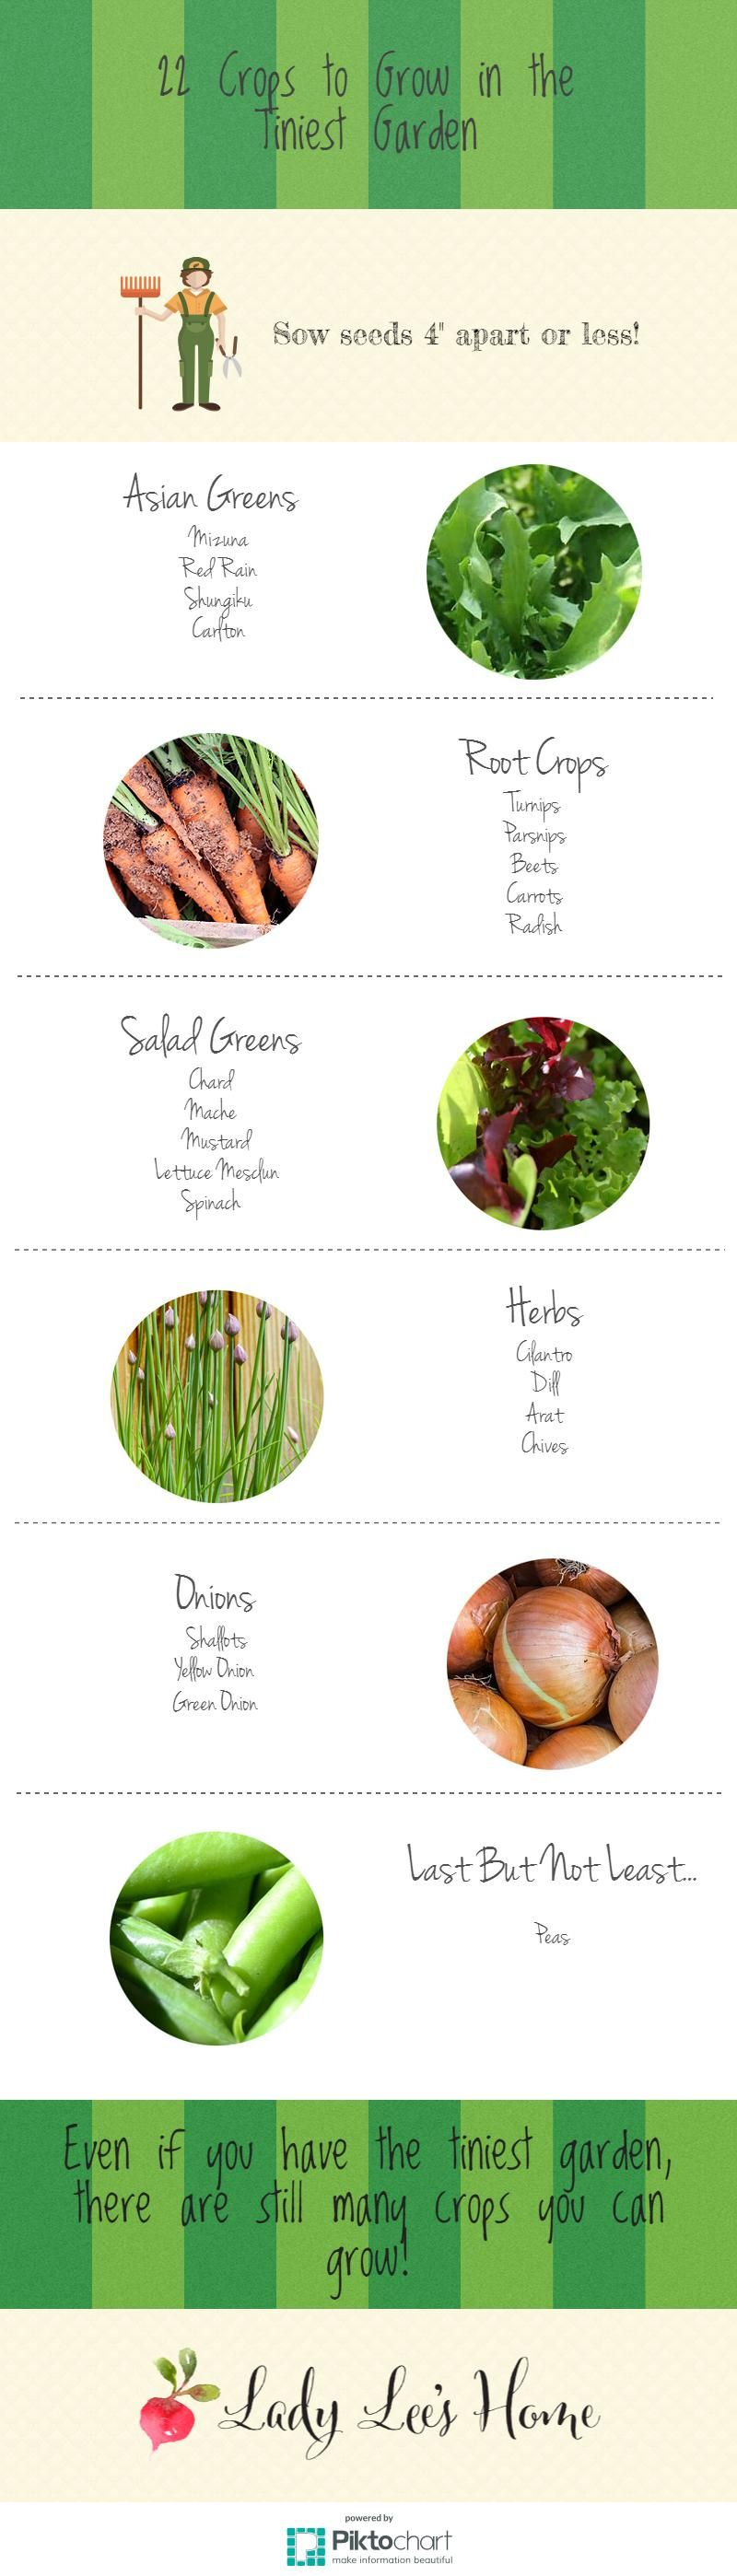 22 Crops to Grow in the Tiniest Garden | Small gardens, Small spaces ...